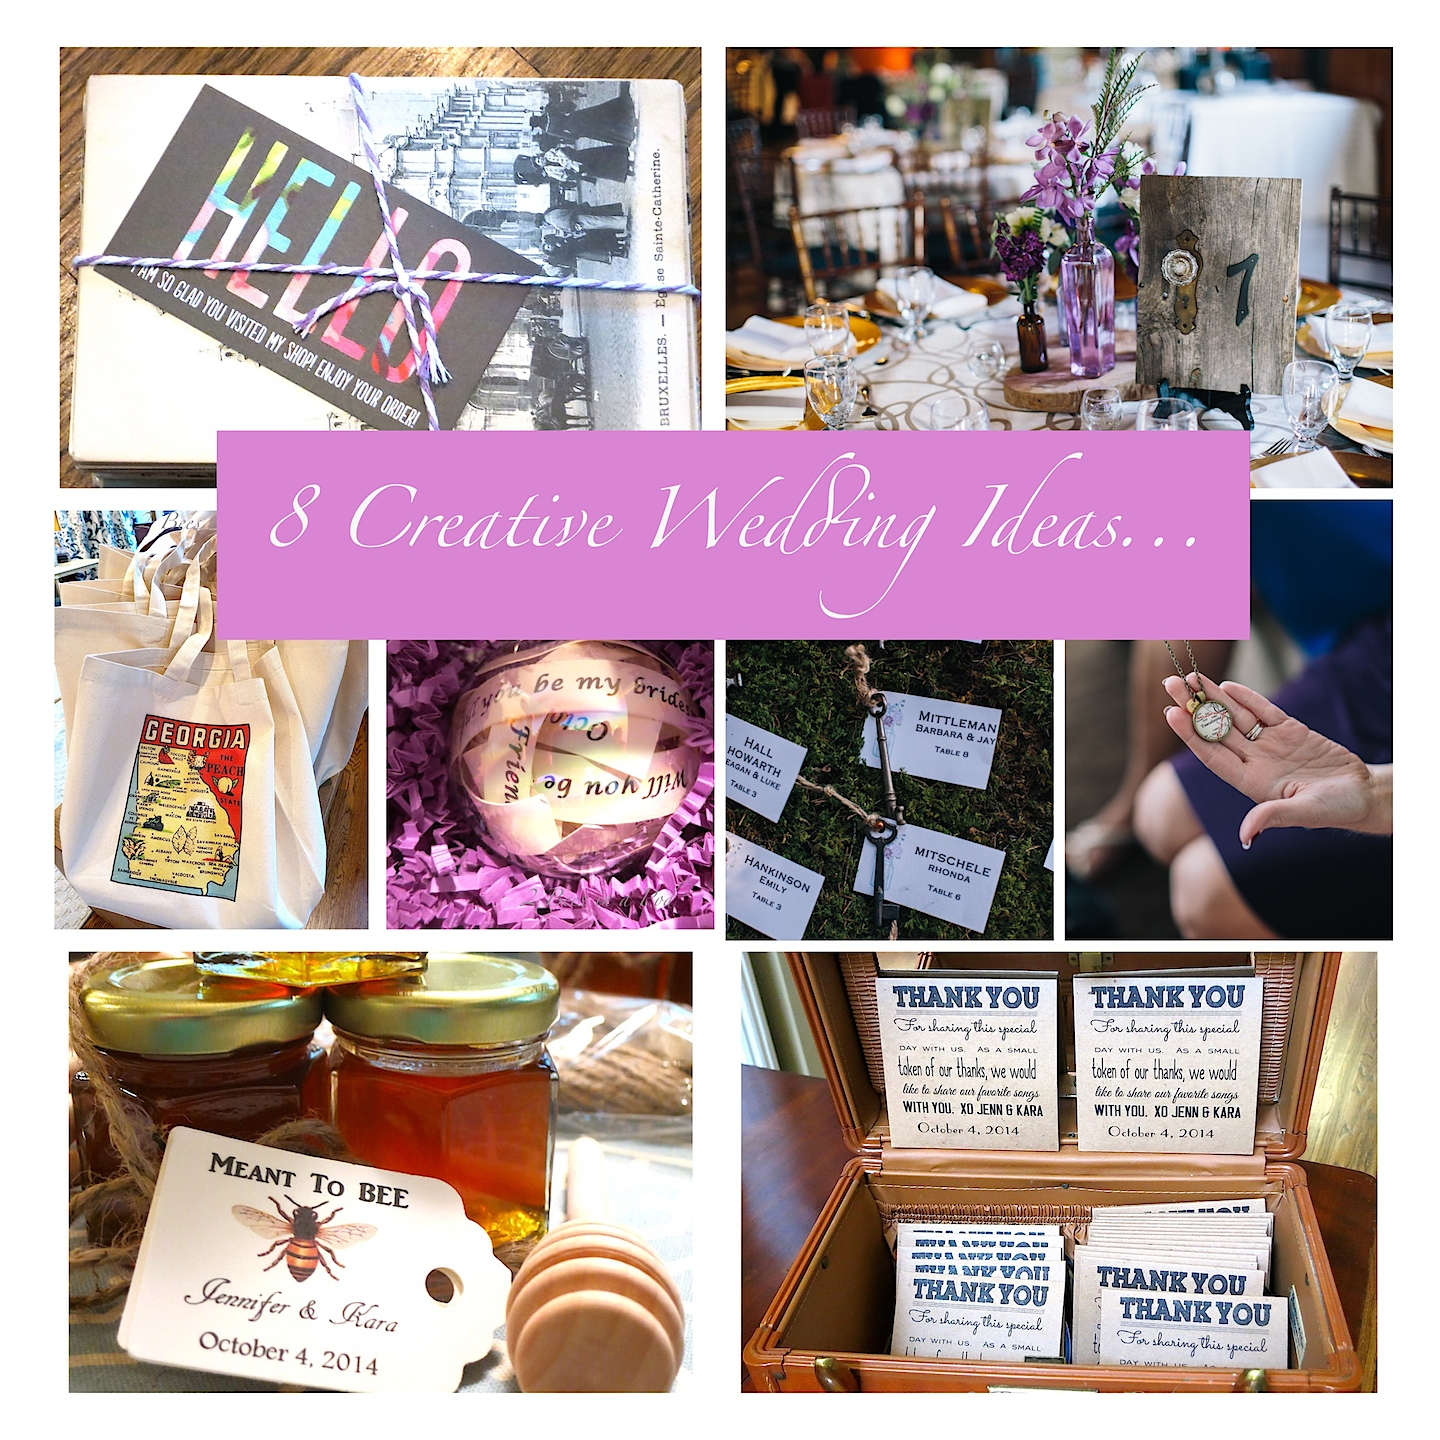 Wedding Ideas Roundup…were you fortunate enough to get engaged for Christmas or possibly the New Year. We've collected ideas from my wedding that will help make your planning easier.